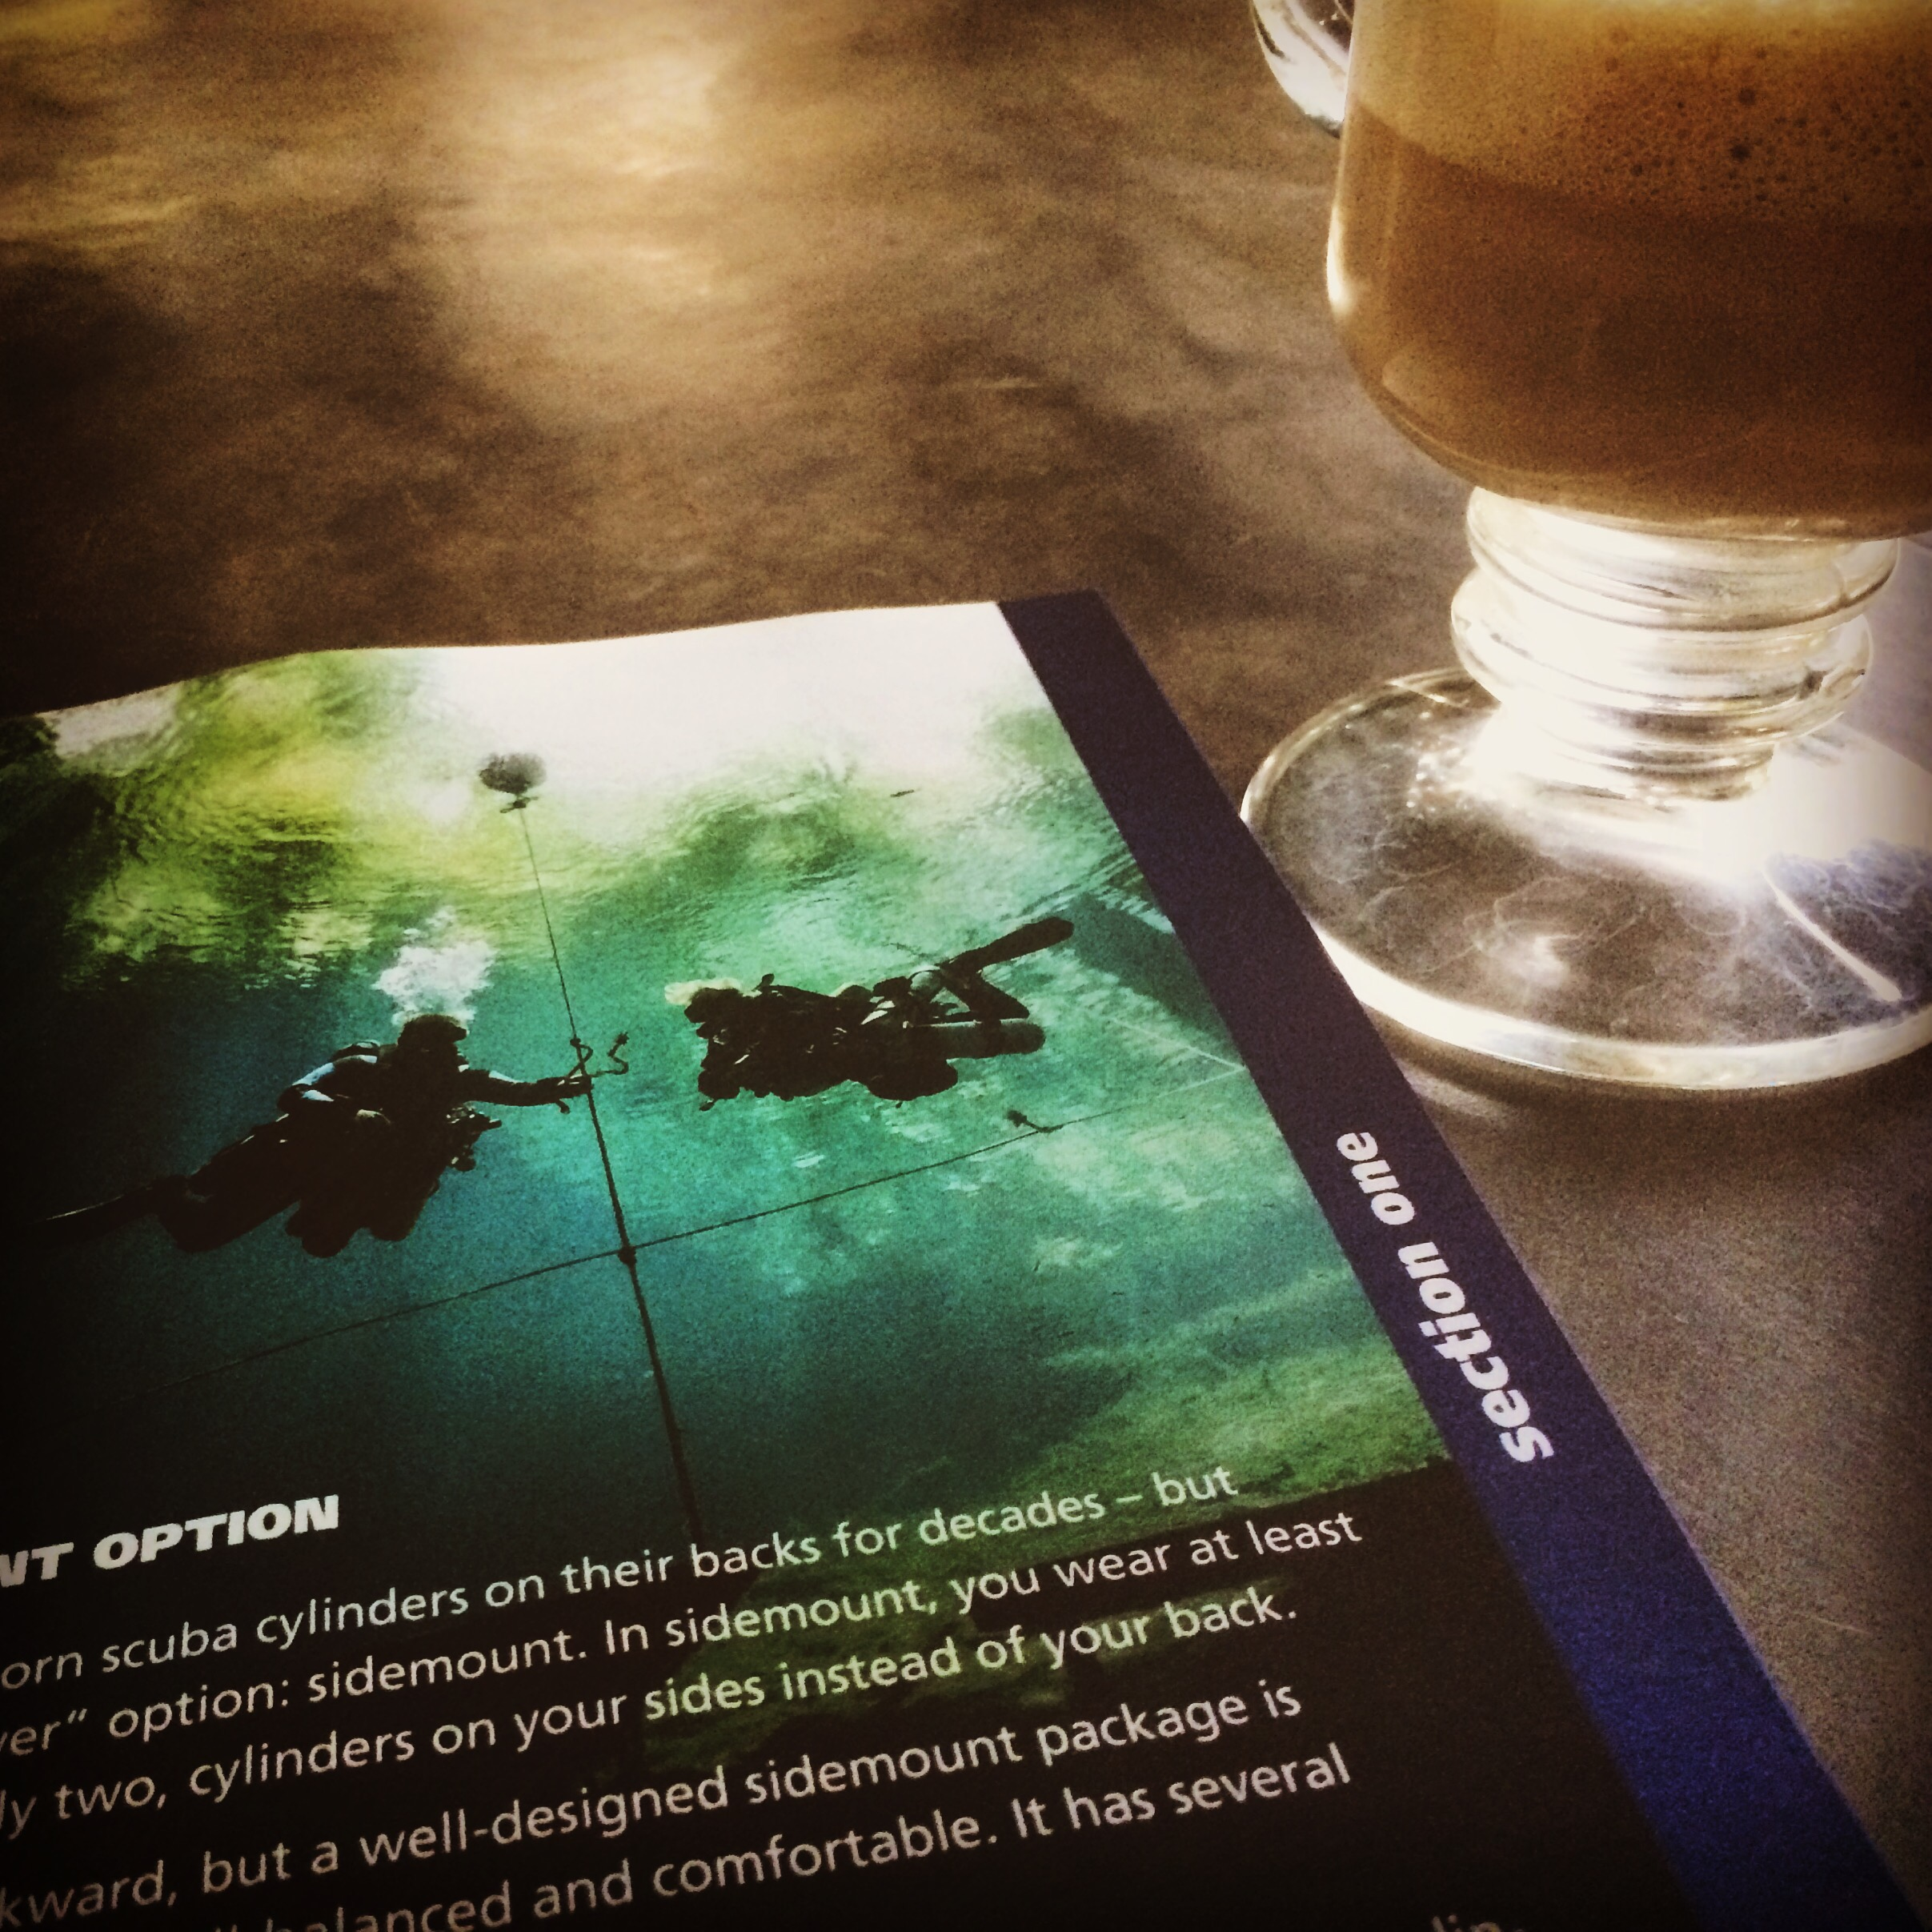 Reading about side-mounting with an obligatory latte